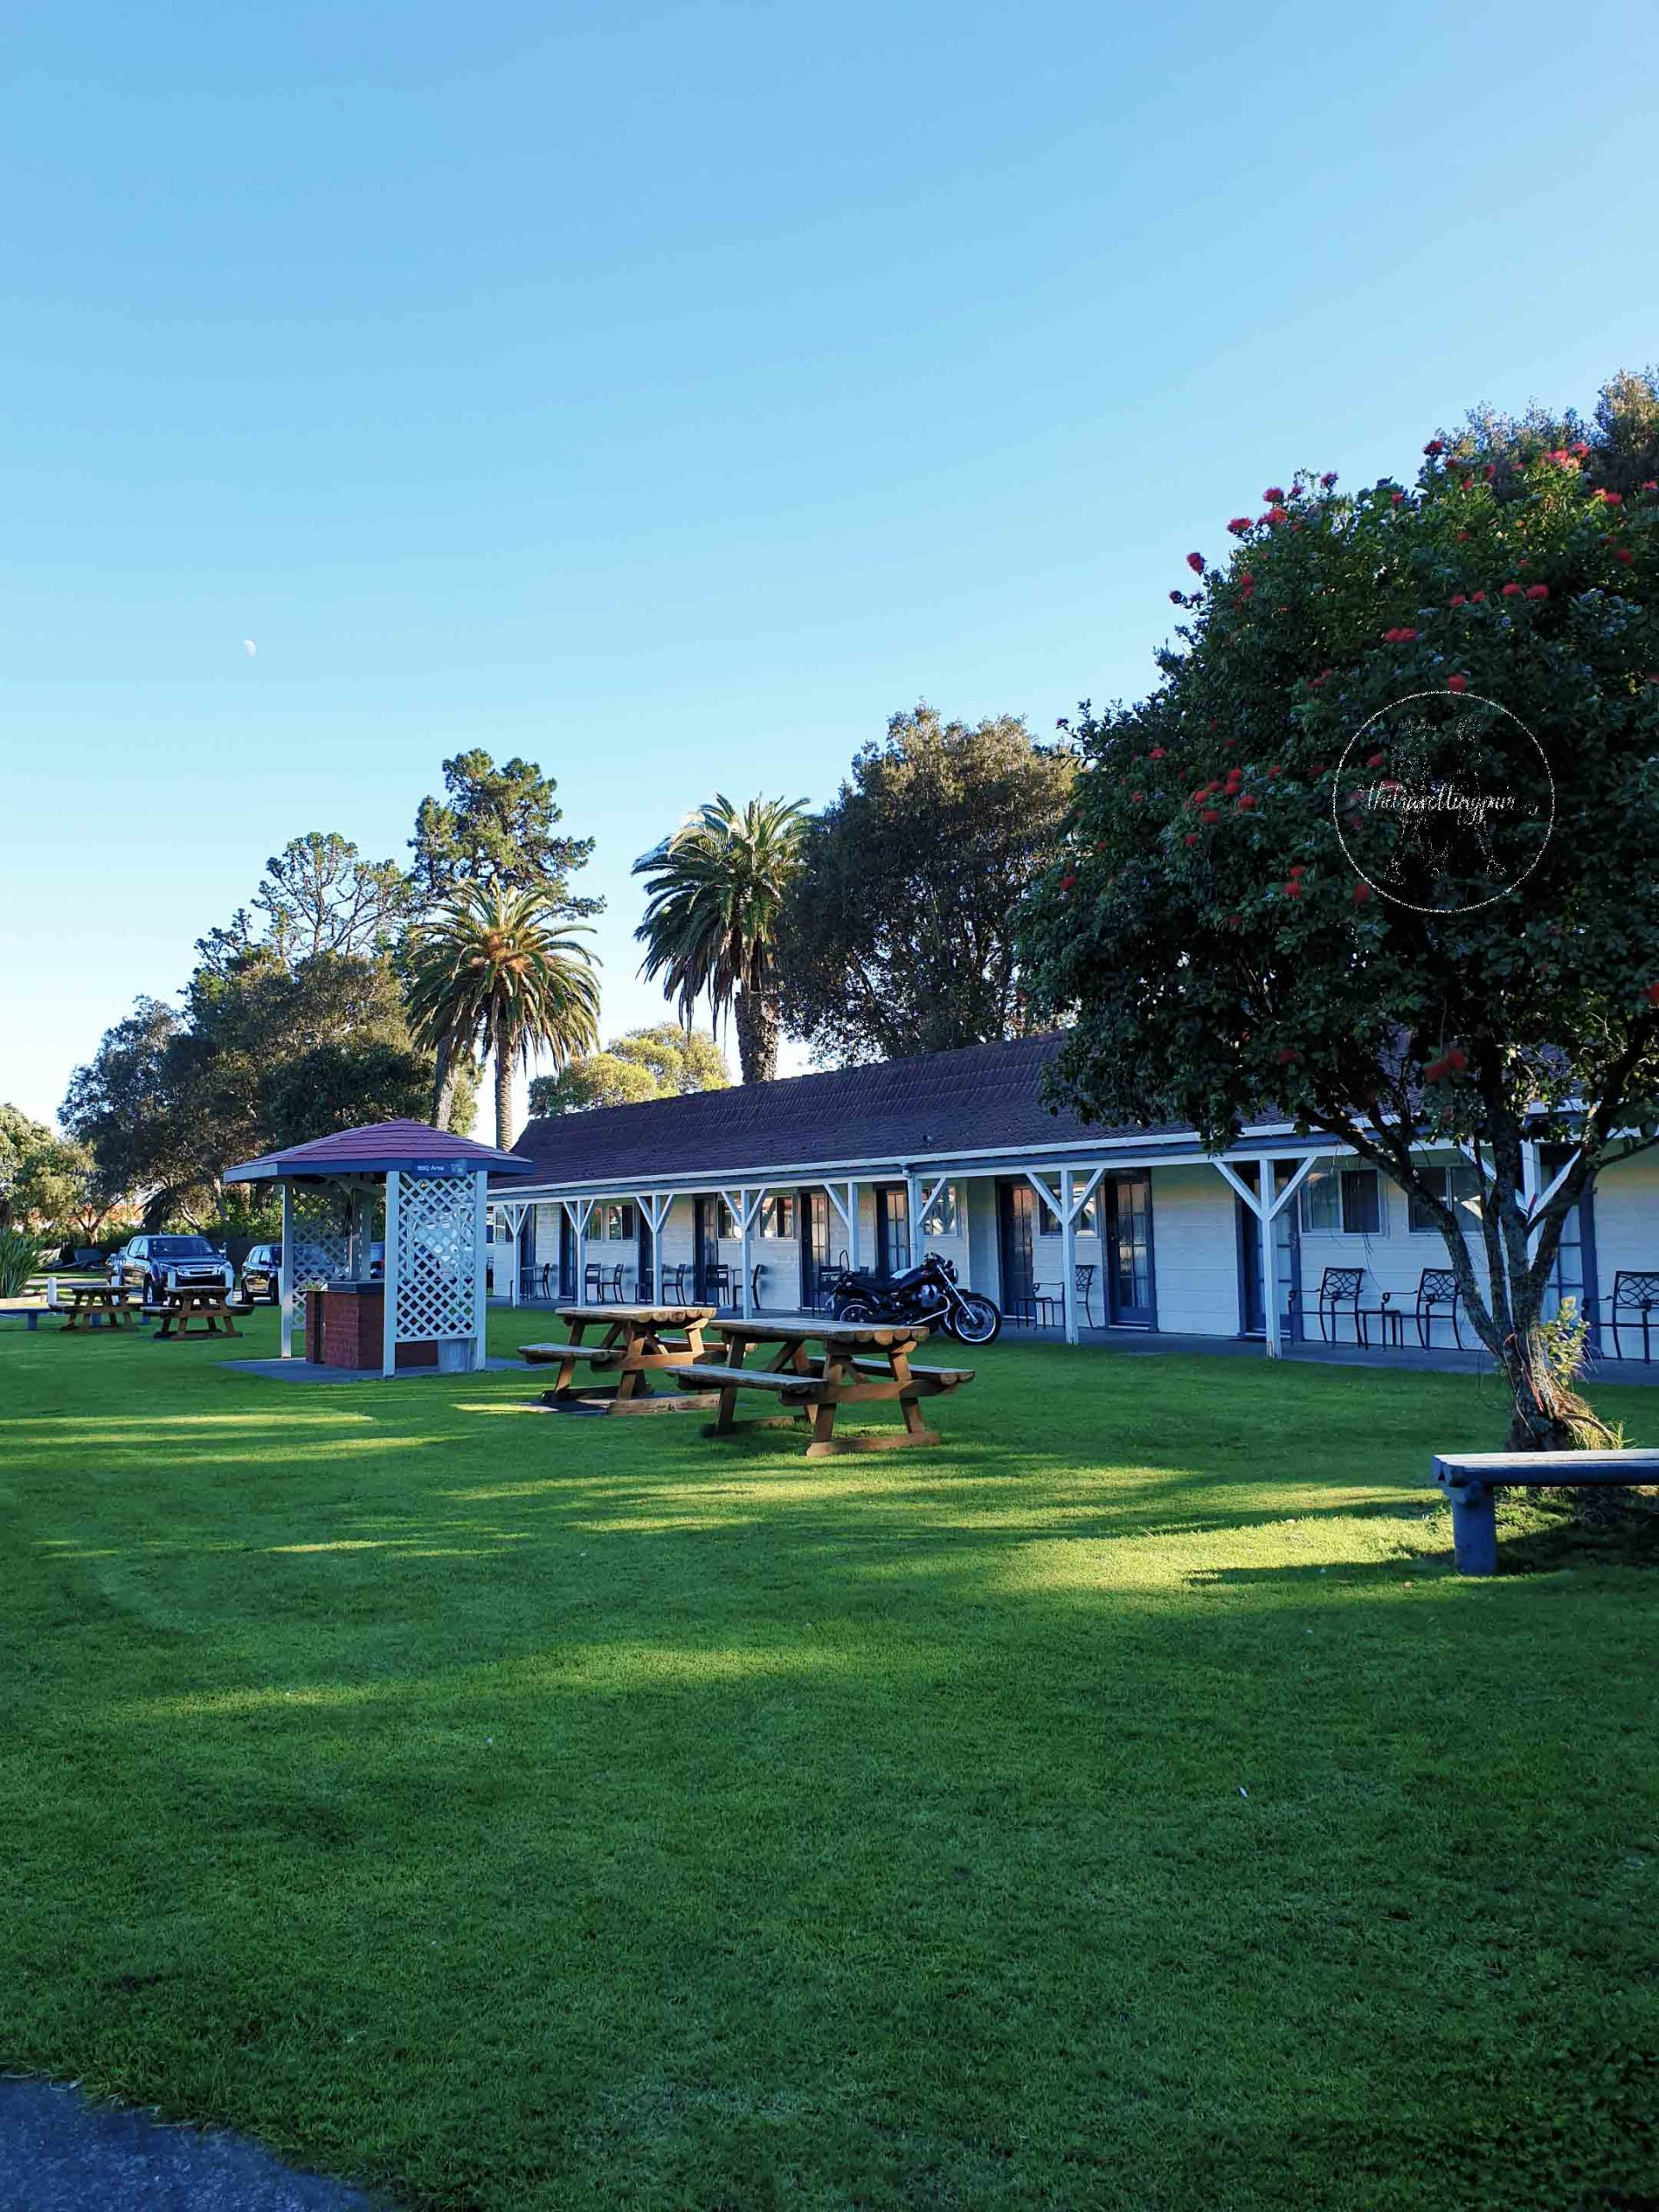 Top 10 Holiday Park Waikanae Beach - Join the Travelling Pair